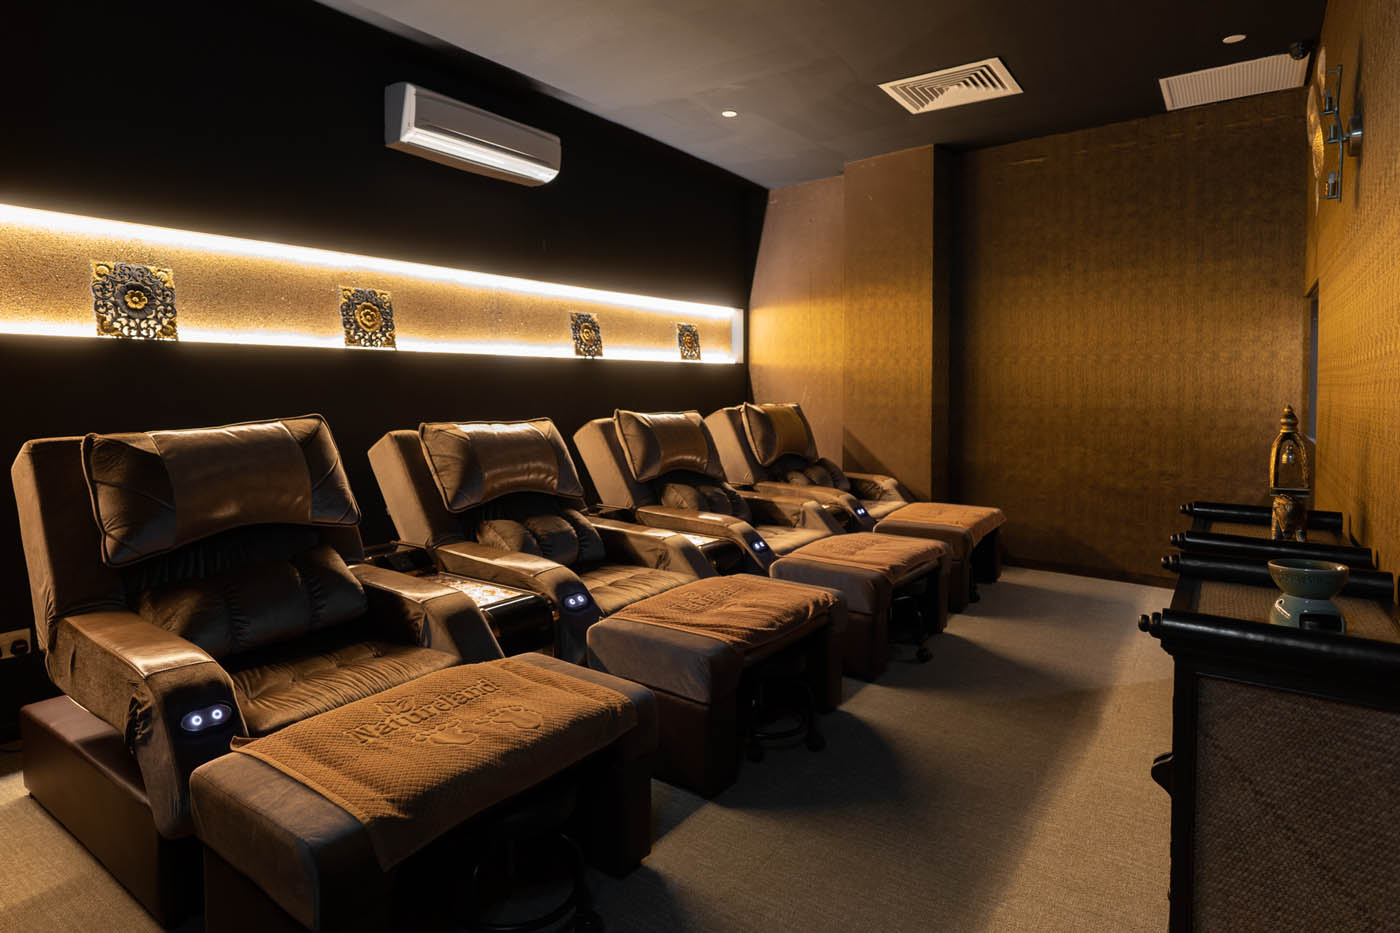 Interior Design Company For Spa and Retail in Singapore